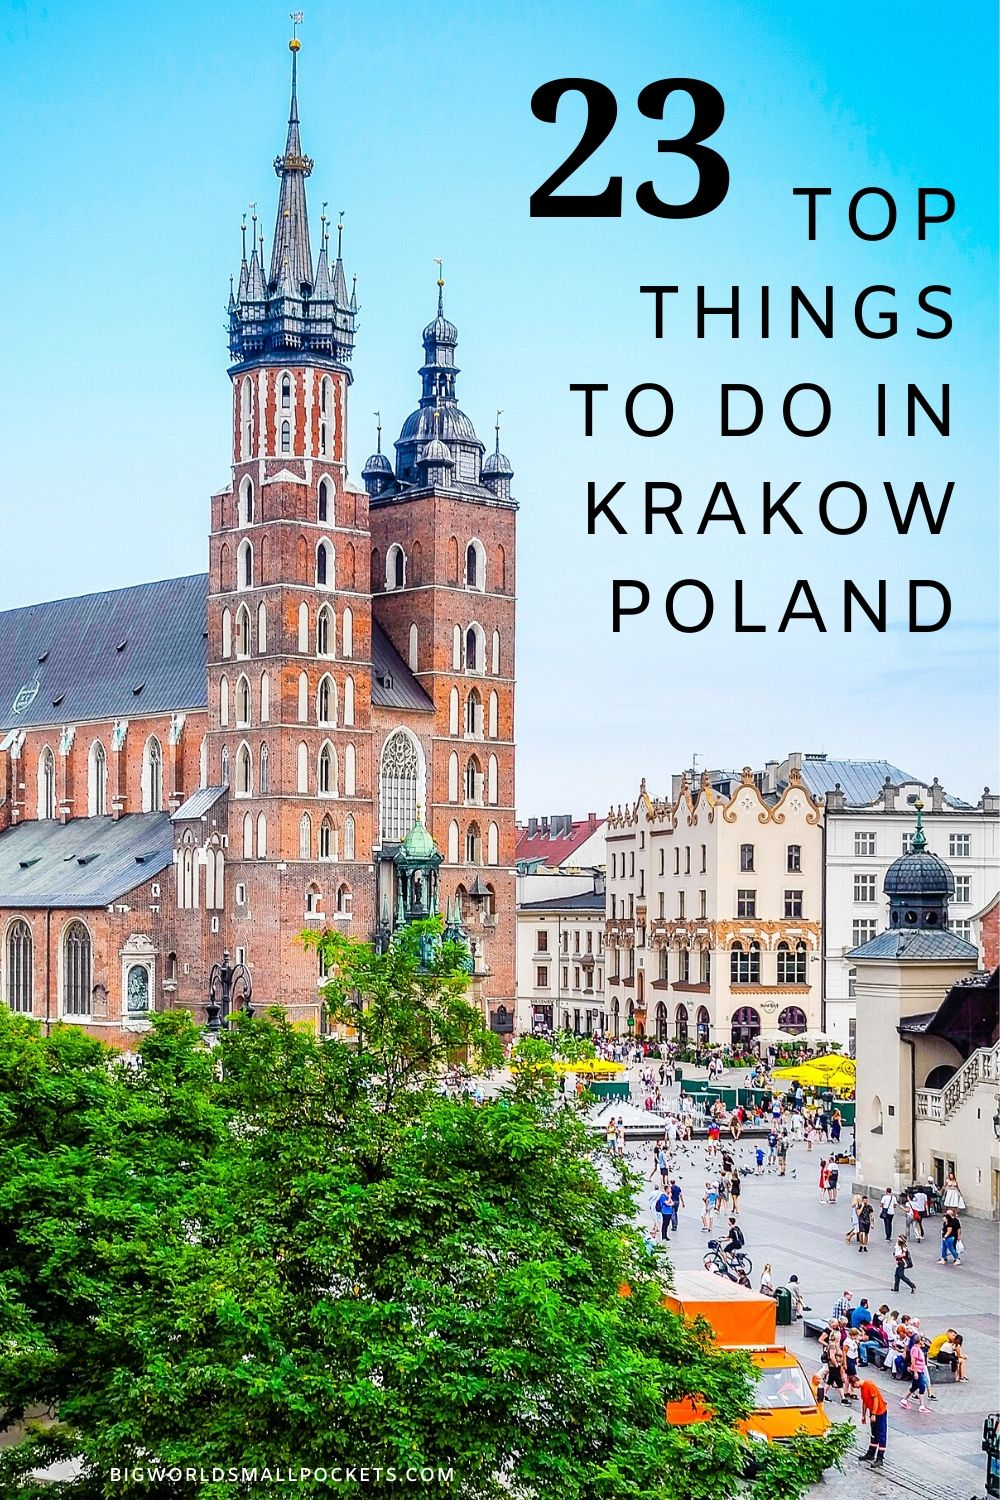 The 23 Best Things to Do in Krakow, Poland